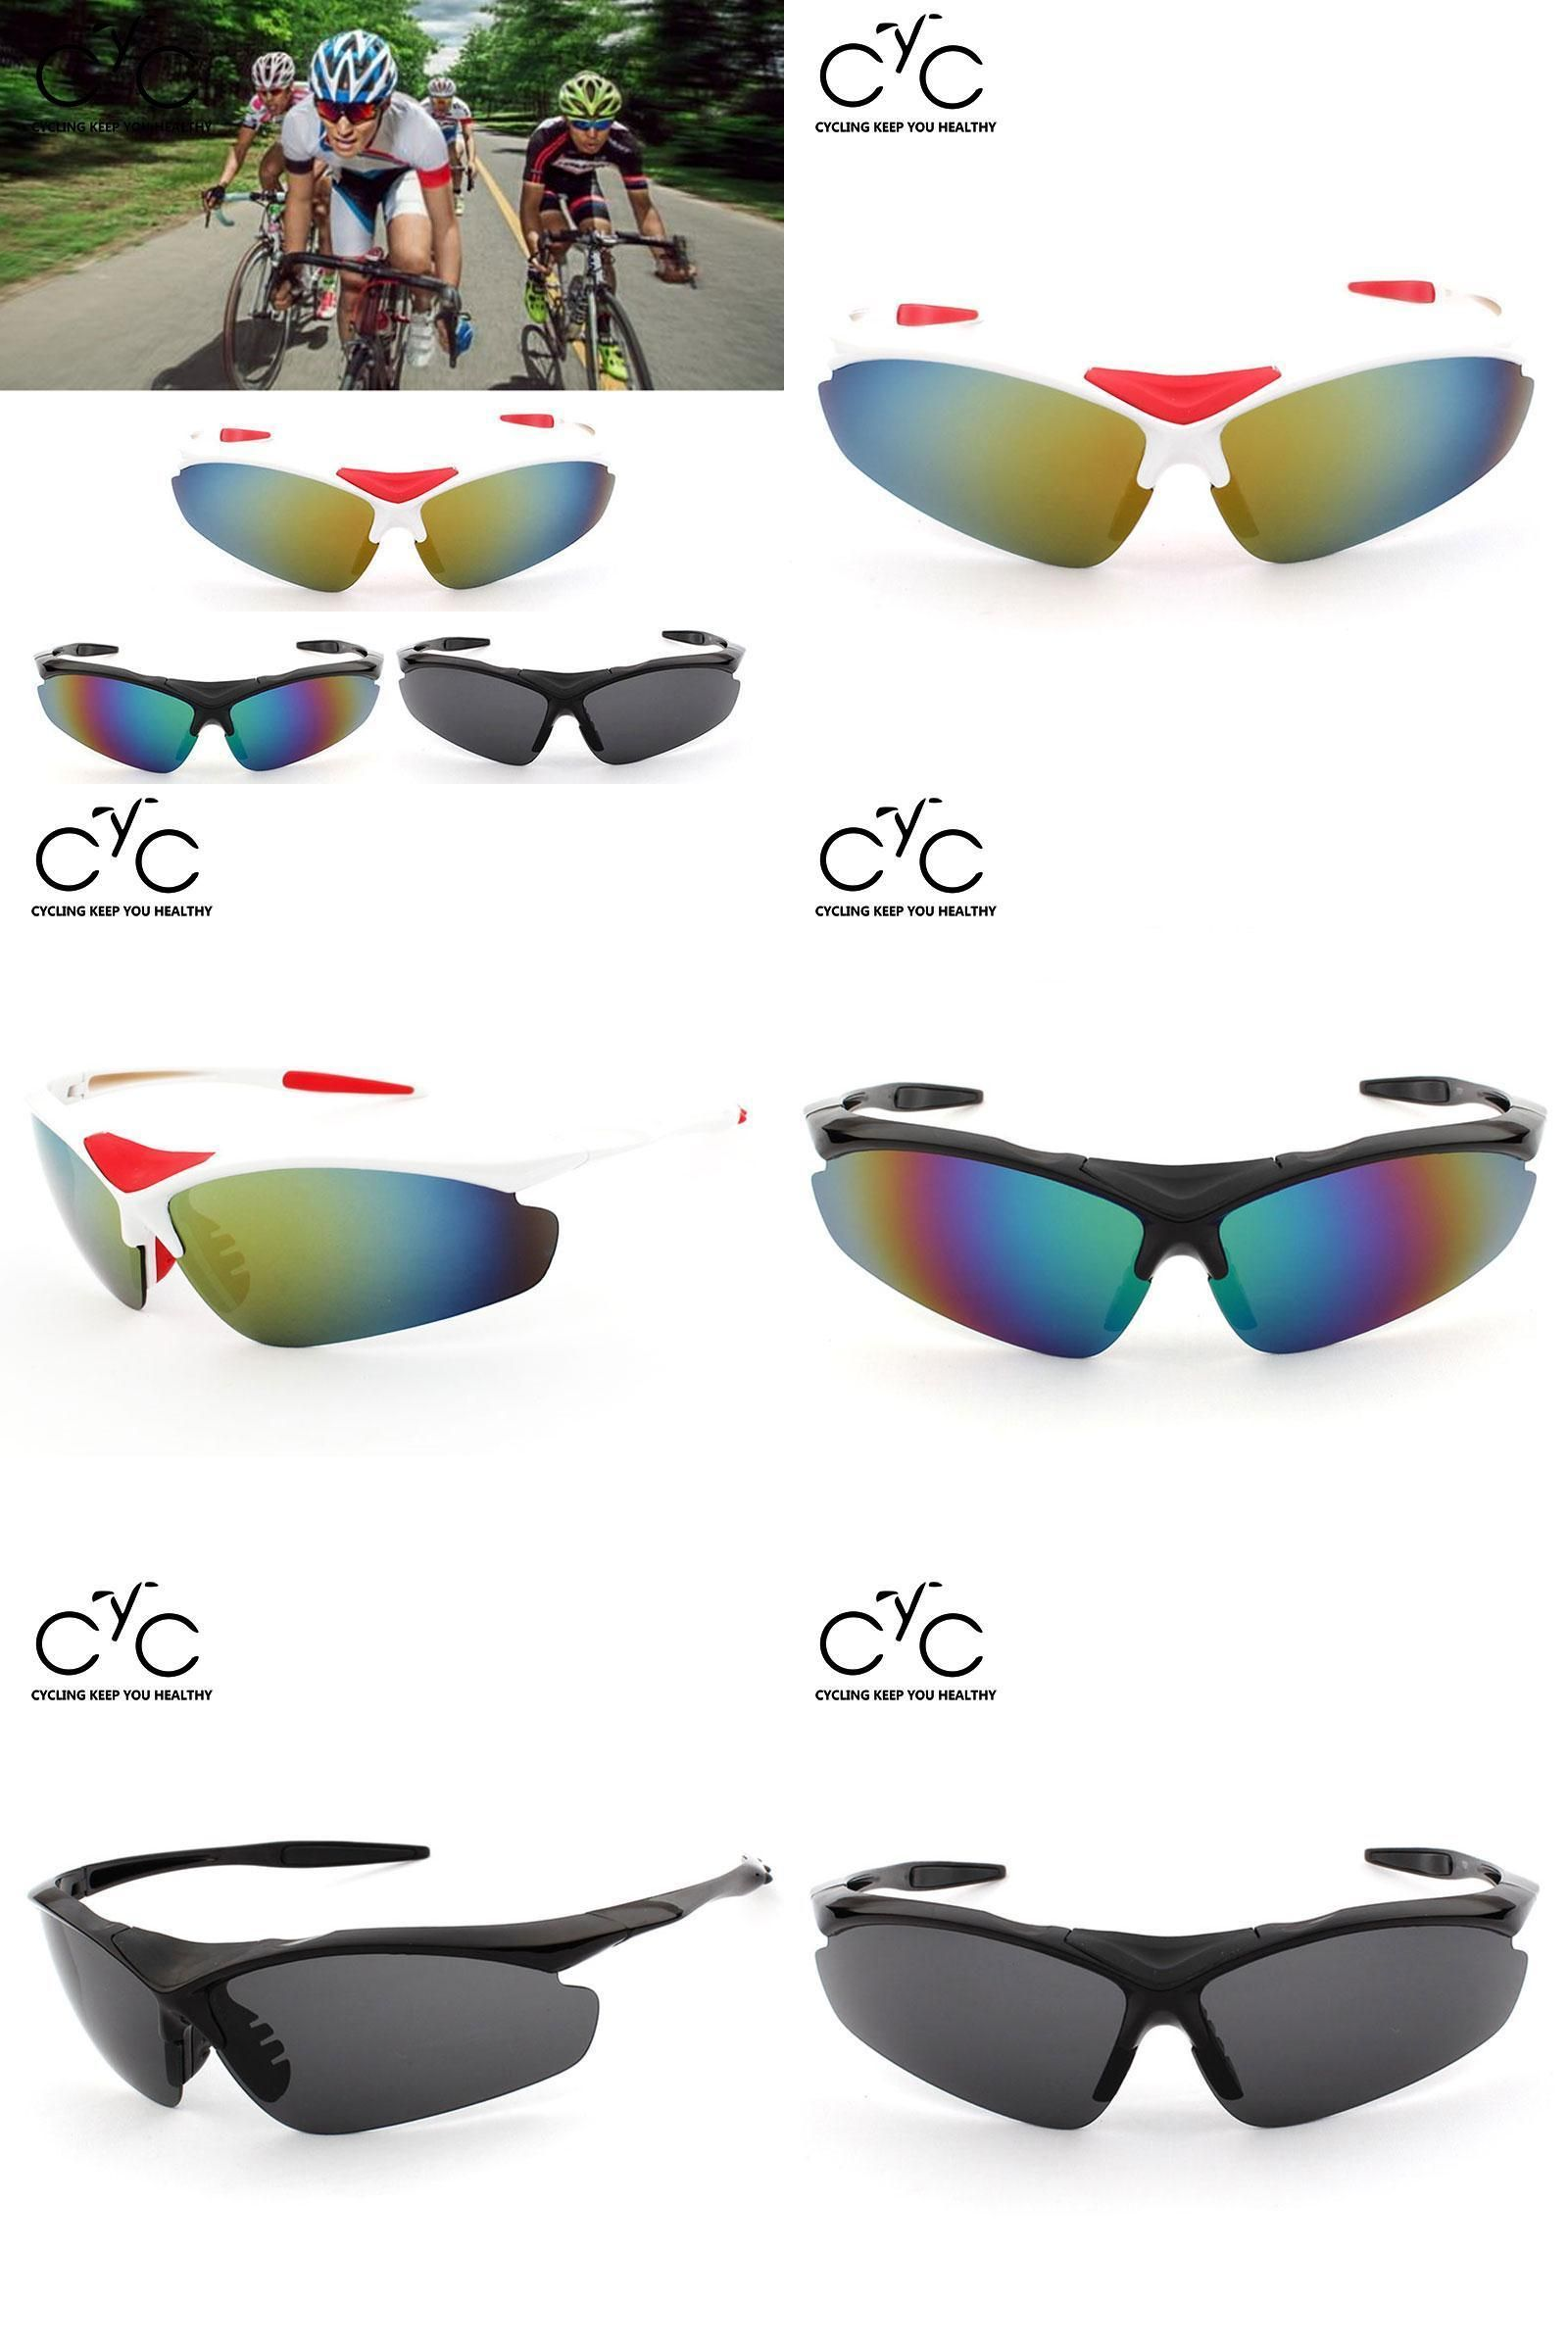 [Visit to Buy] Sunglasses Women Sports Bike Outdoor Riding